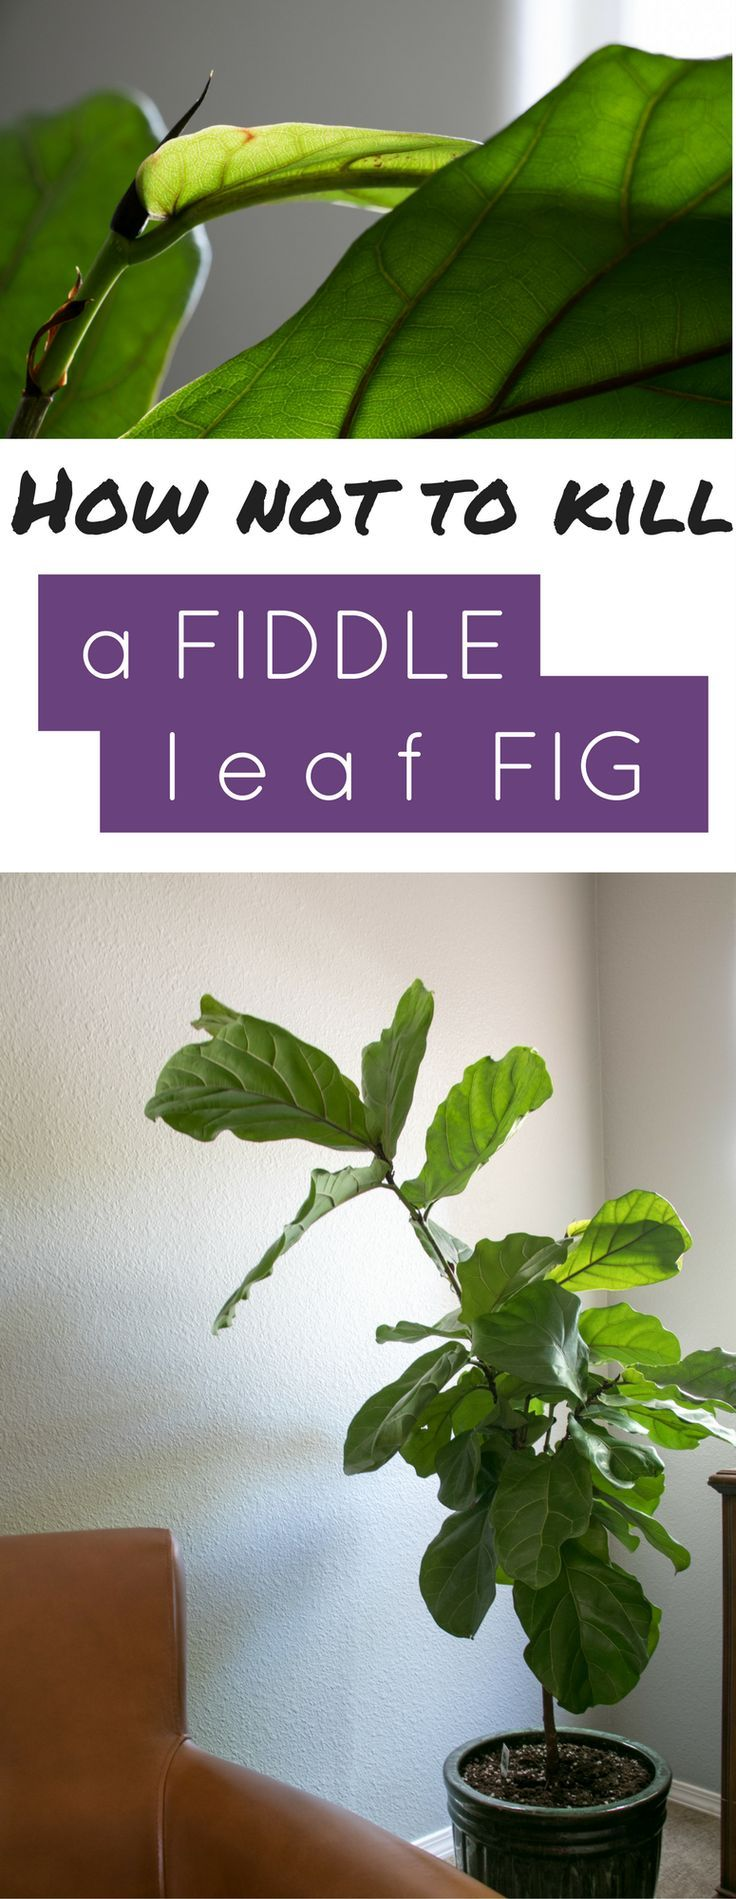 Grow a fiddle leaf fig tree with these simple steps.